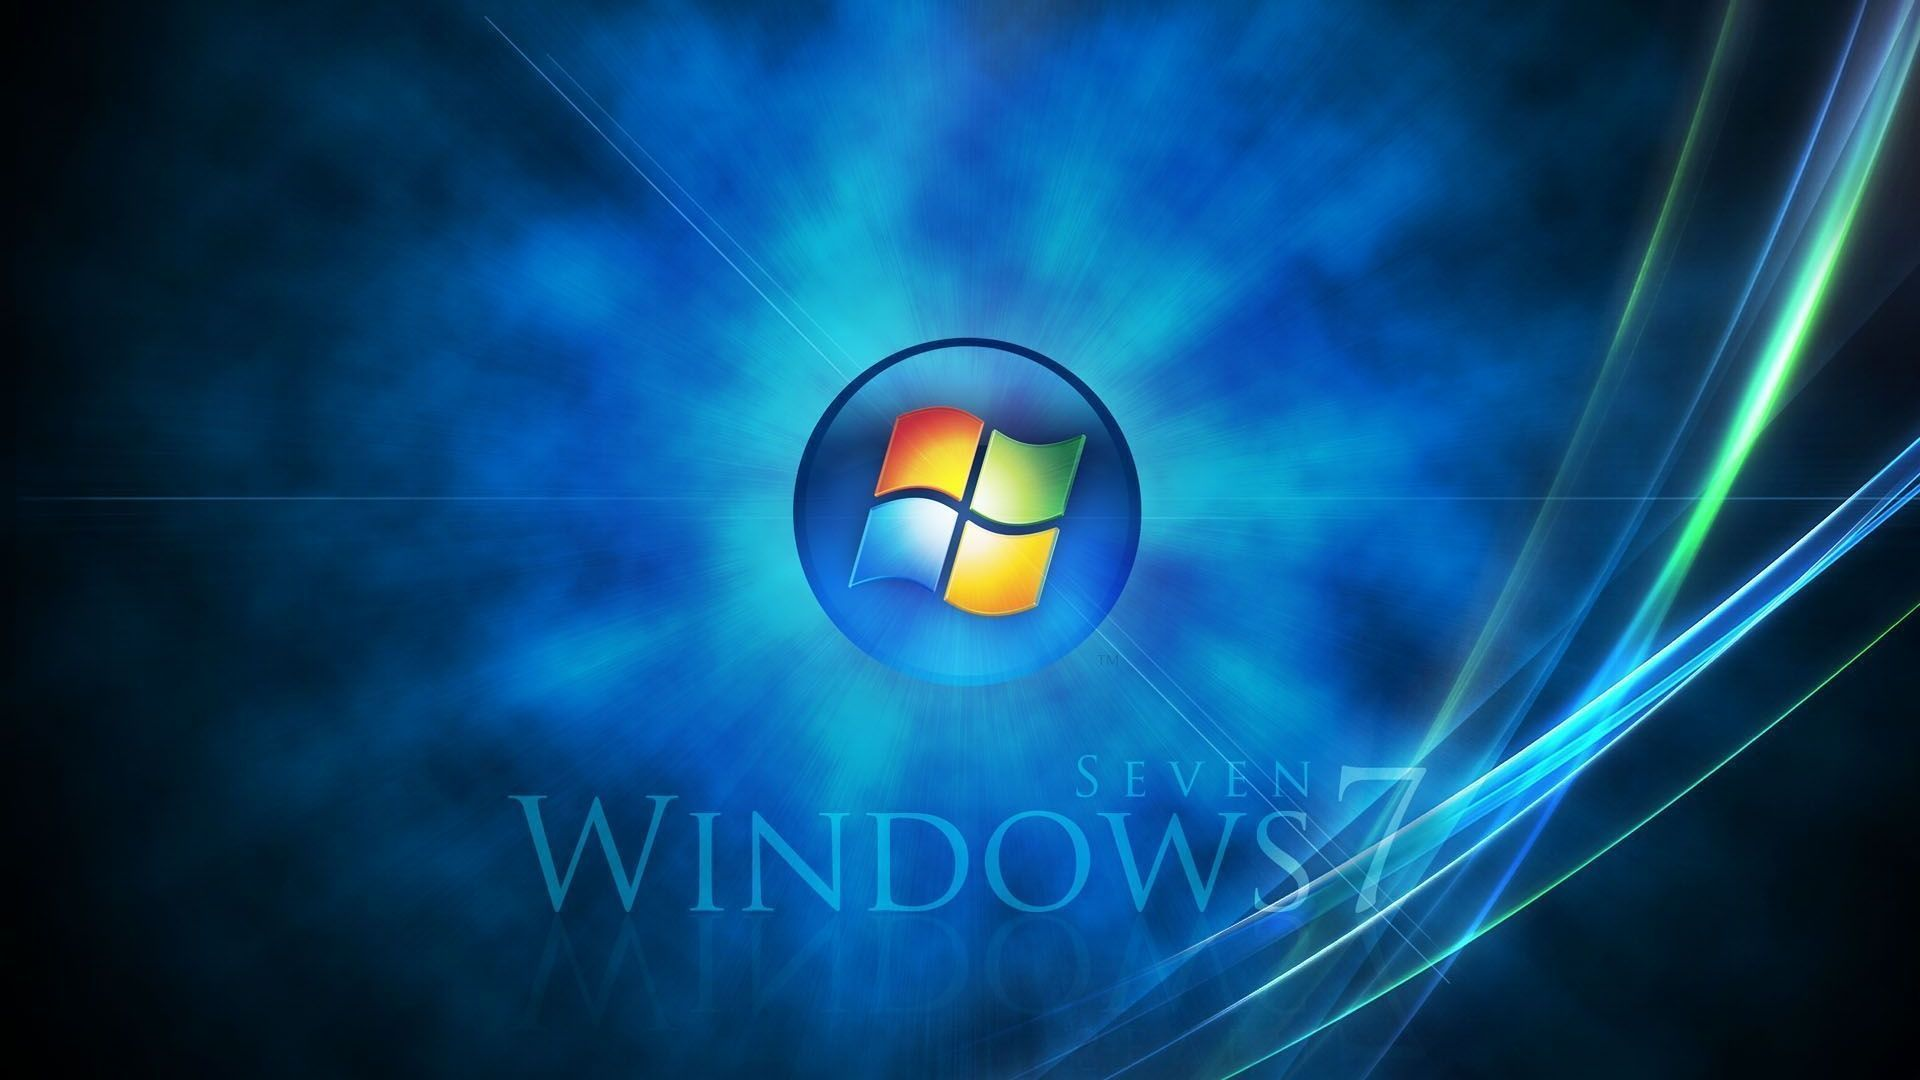 of the best windows wallpaper backgrounds | hd wallpapers